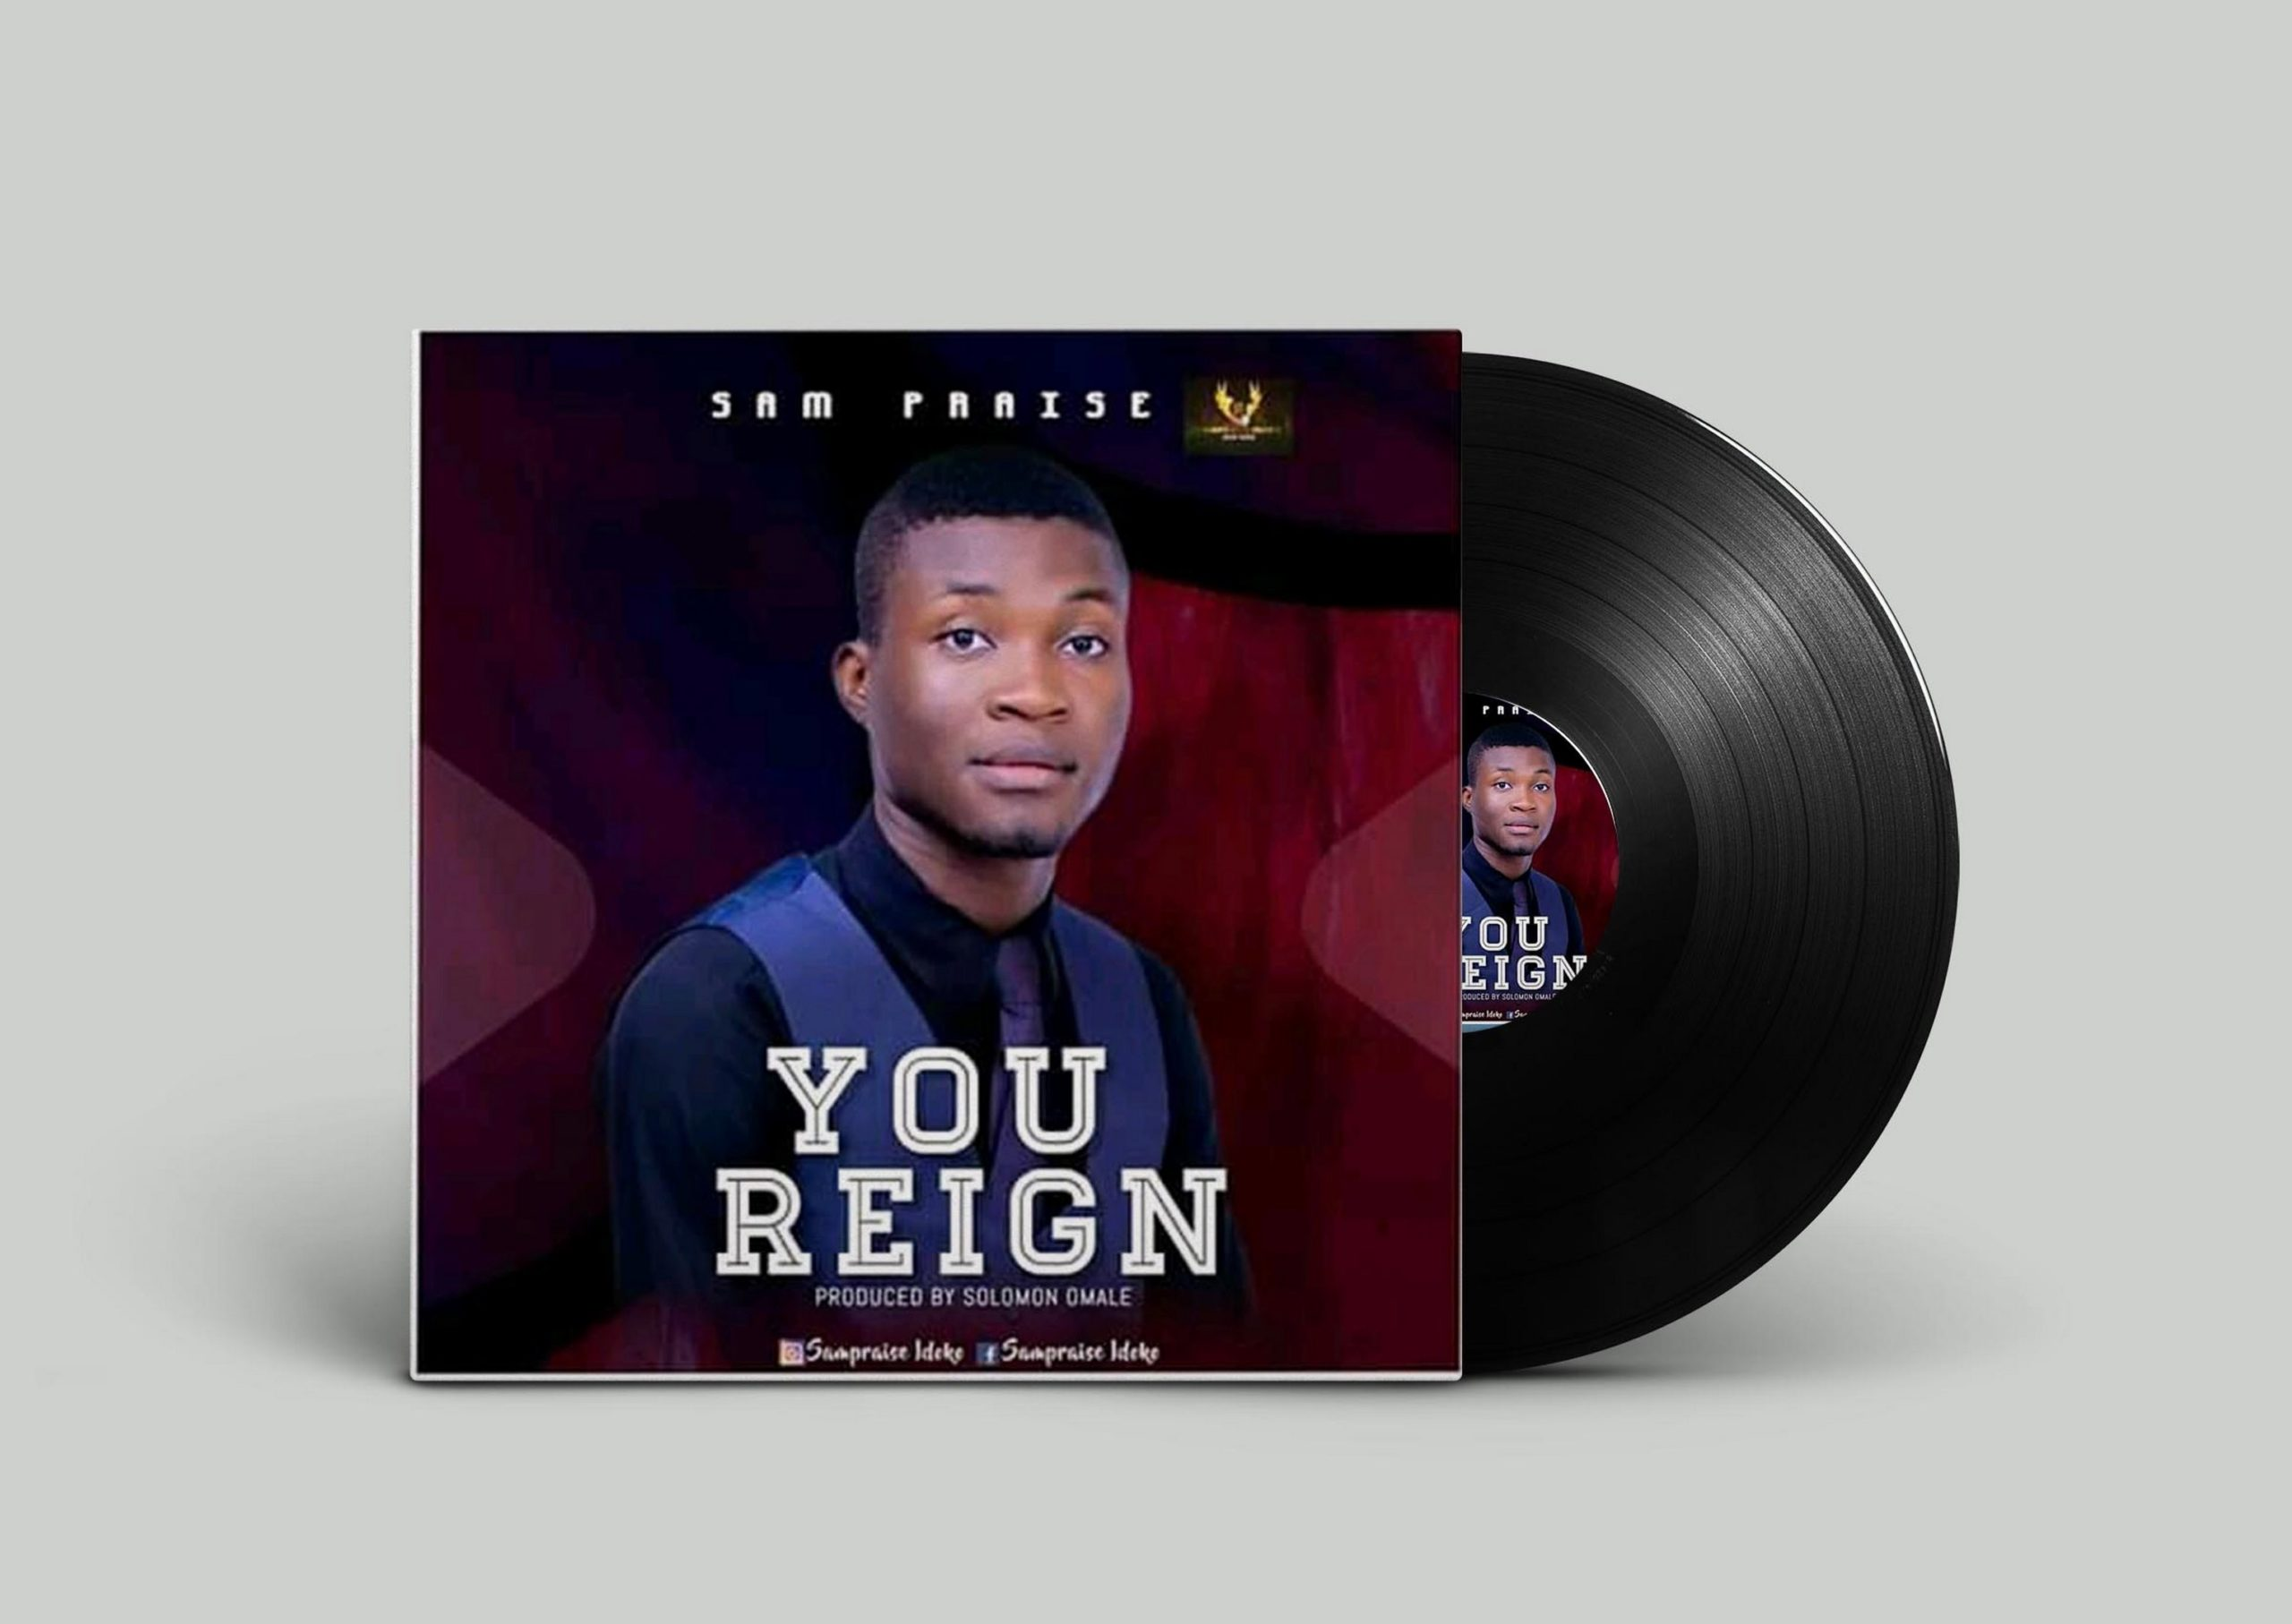 YOU REIGN - Sam Praise